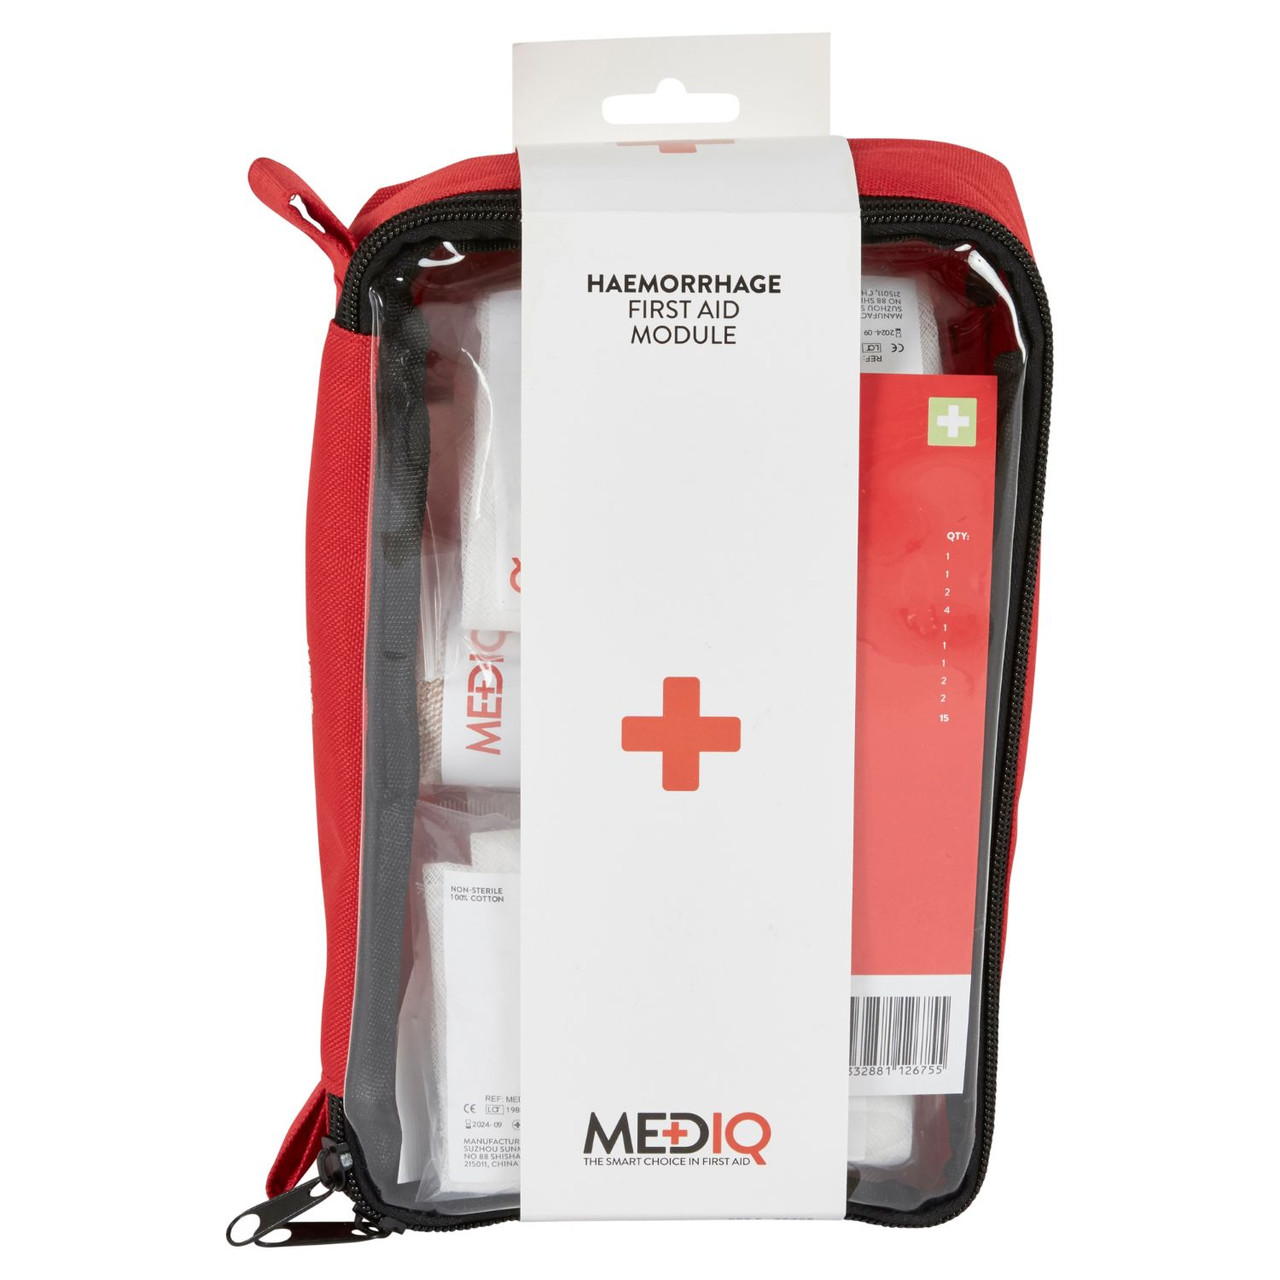 First Aid Kit Haemorrhage major bleeding Module MEDIQ